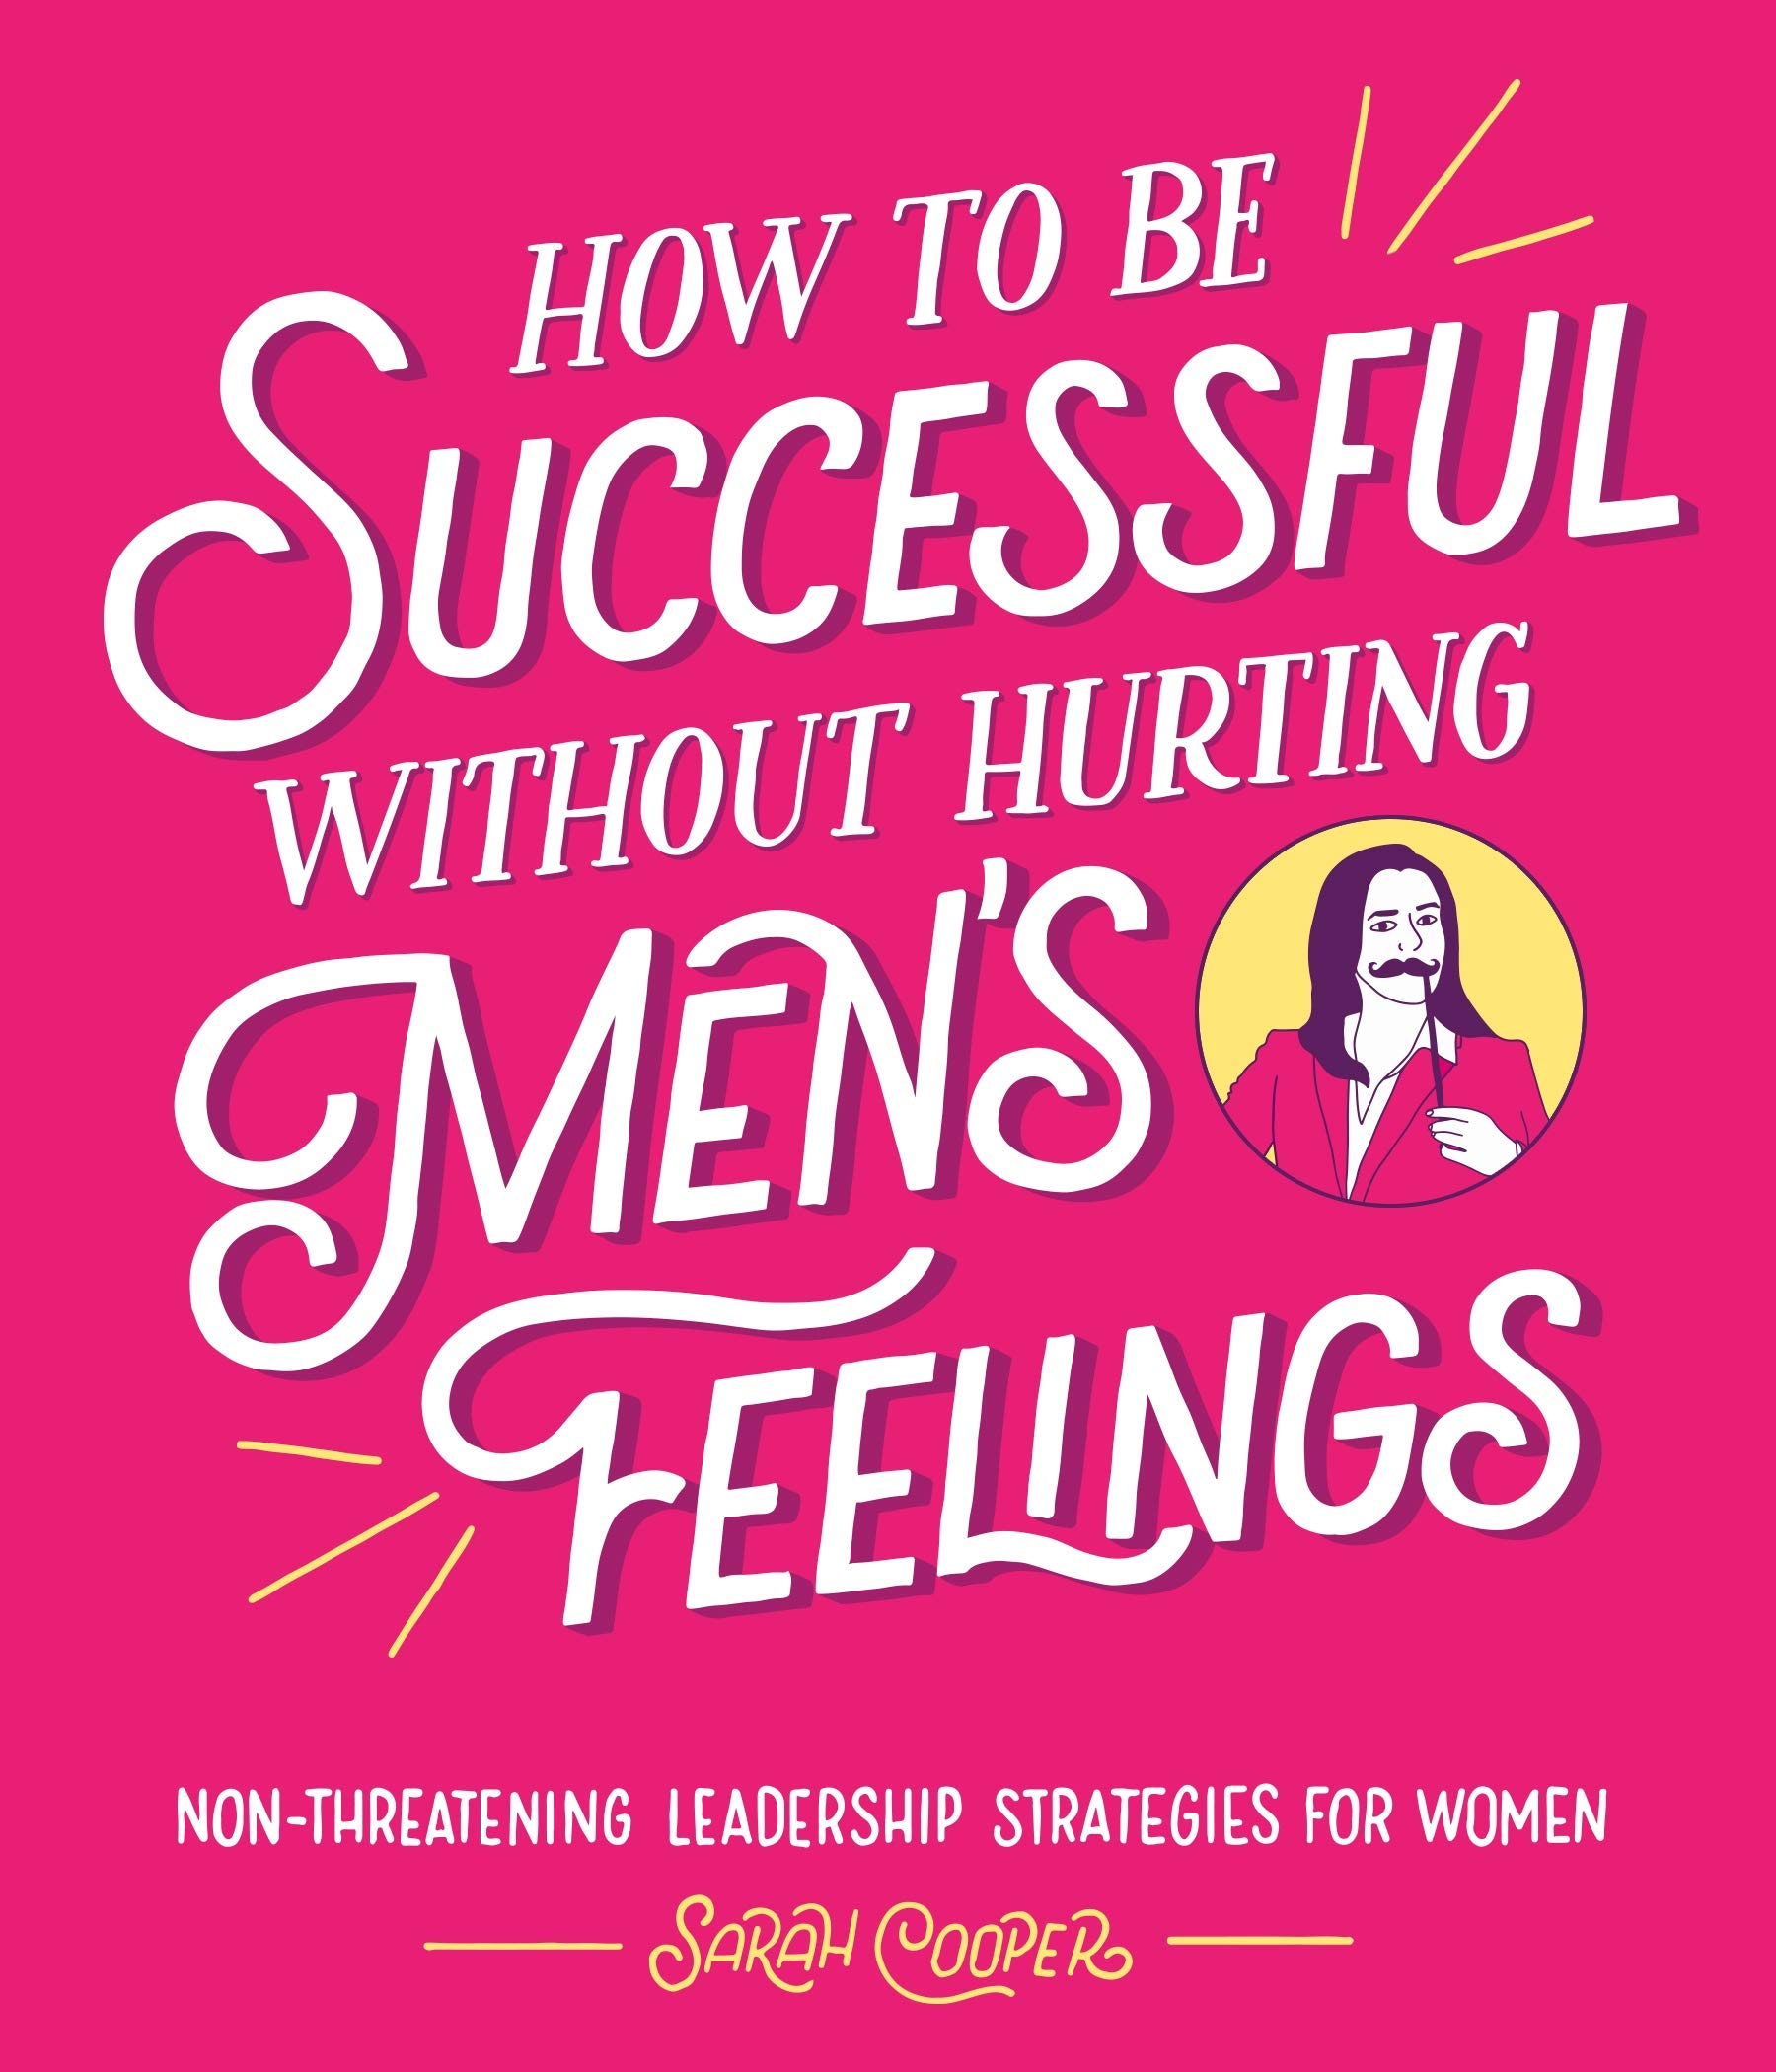 How to Be Successful Without Hurting Men's Feelings: Non threatening Leadership Strategies for Women